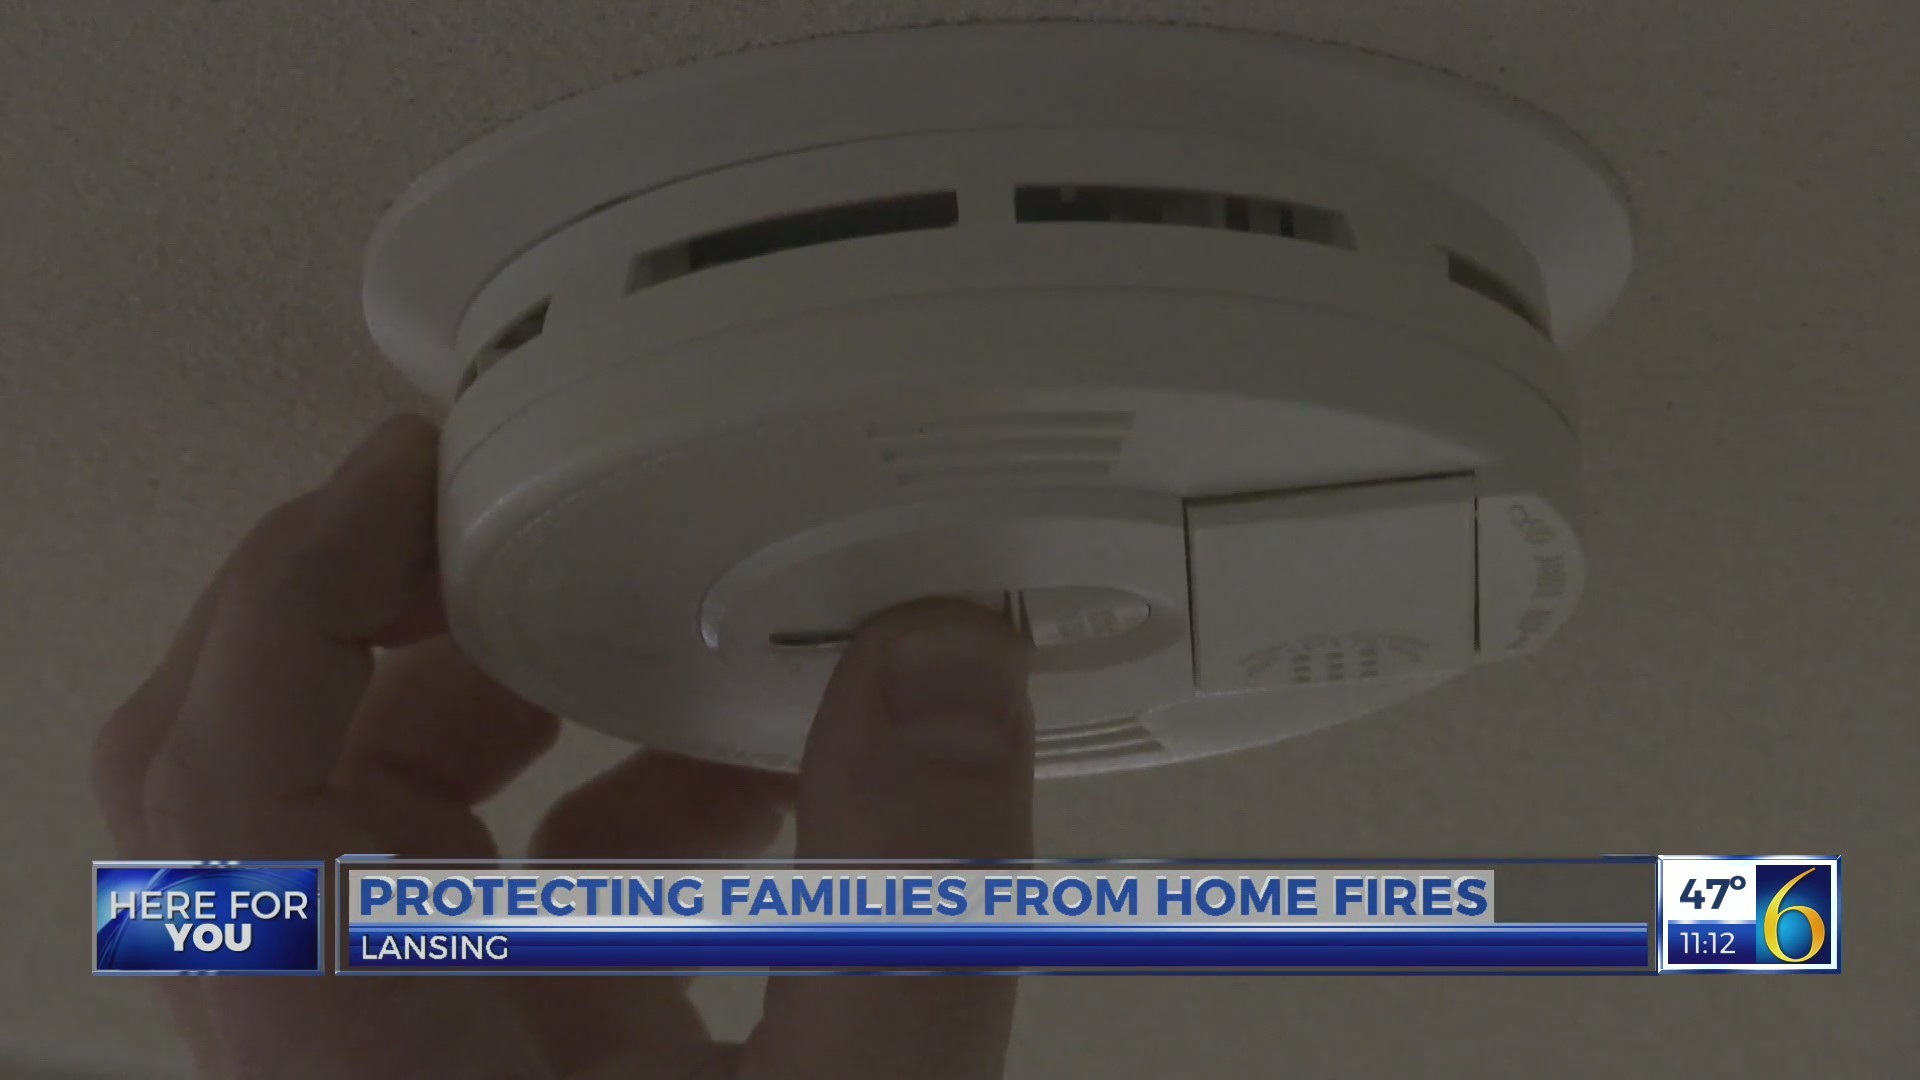 Protecting_families_from_home_fires_0_20190513141226